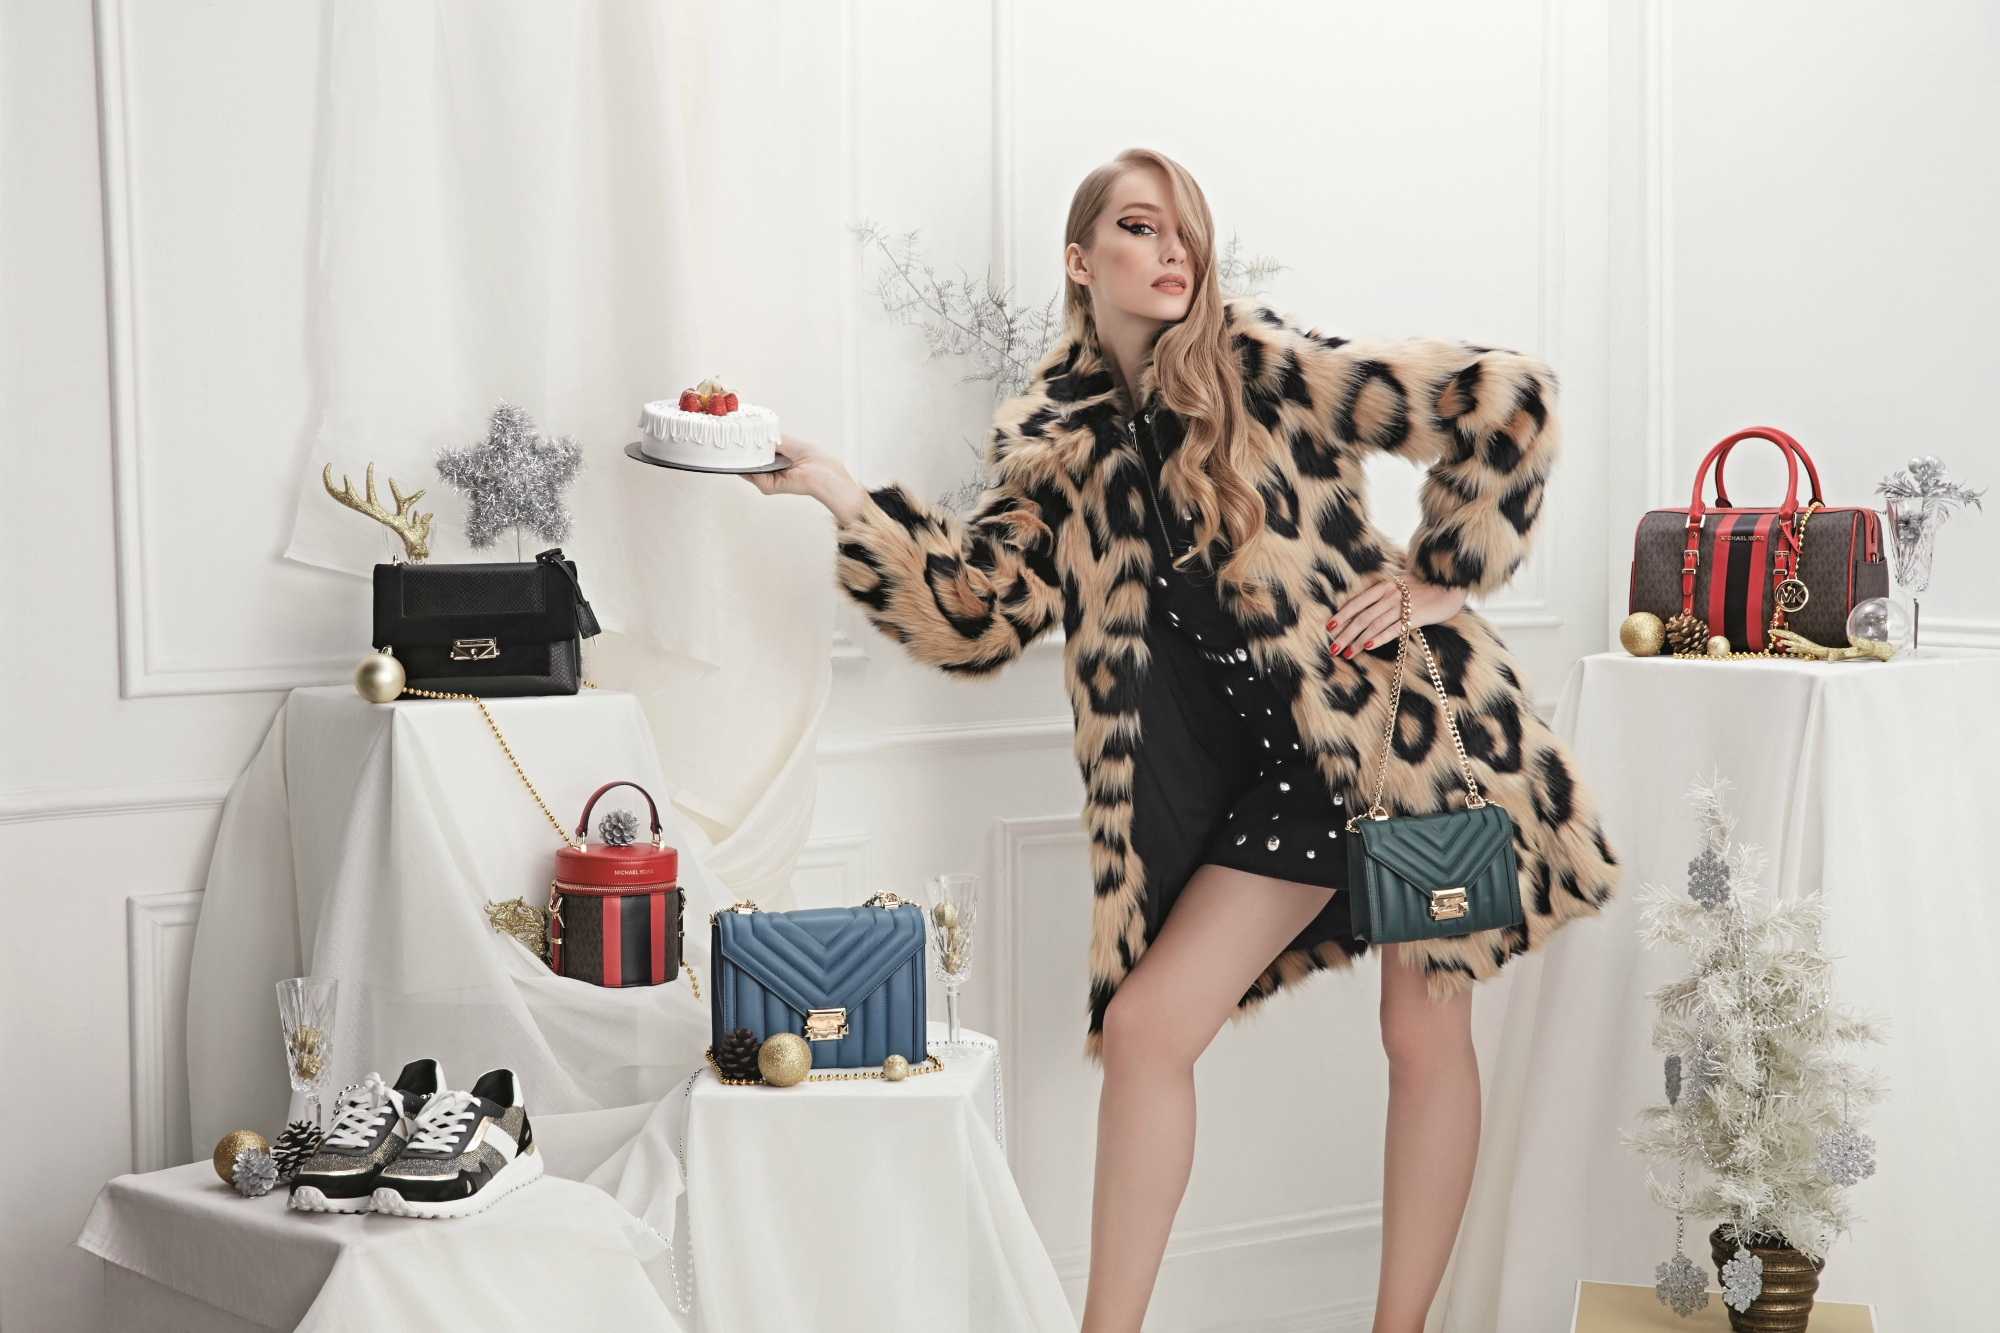 From left to right: Cece Medium Python-Embossed Leather and Suede Shoulder Bag; Bedford Travel Barrel Crossbody; Whitney Large Quilted Leather Convertible Shoulder Bag; Whitney Small Quilted Leather Convertible Shoulder Bag; and Bedford Travel Medium Logo Stripe Satchel; dress; coat; and shoes, all from Michael Kors.